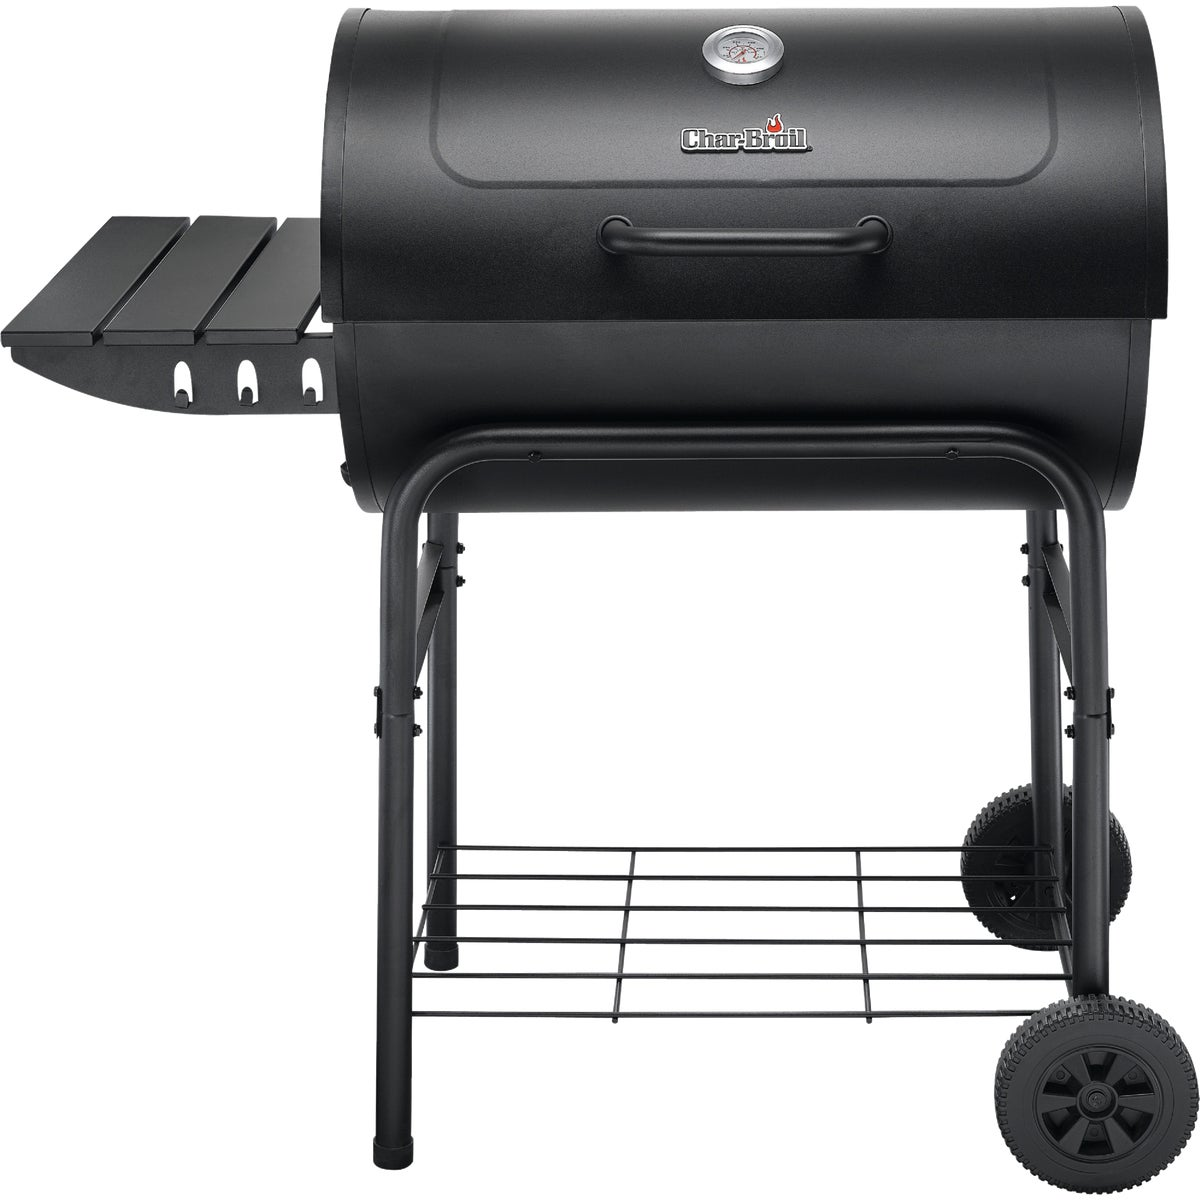 AG 800 CHARCOAL GRILL